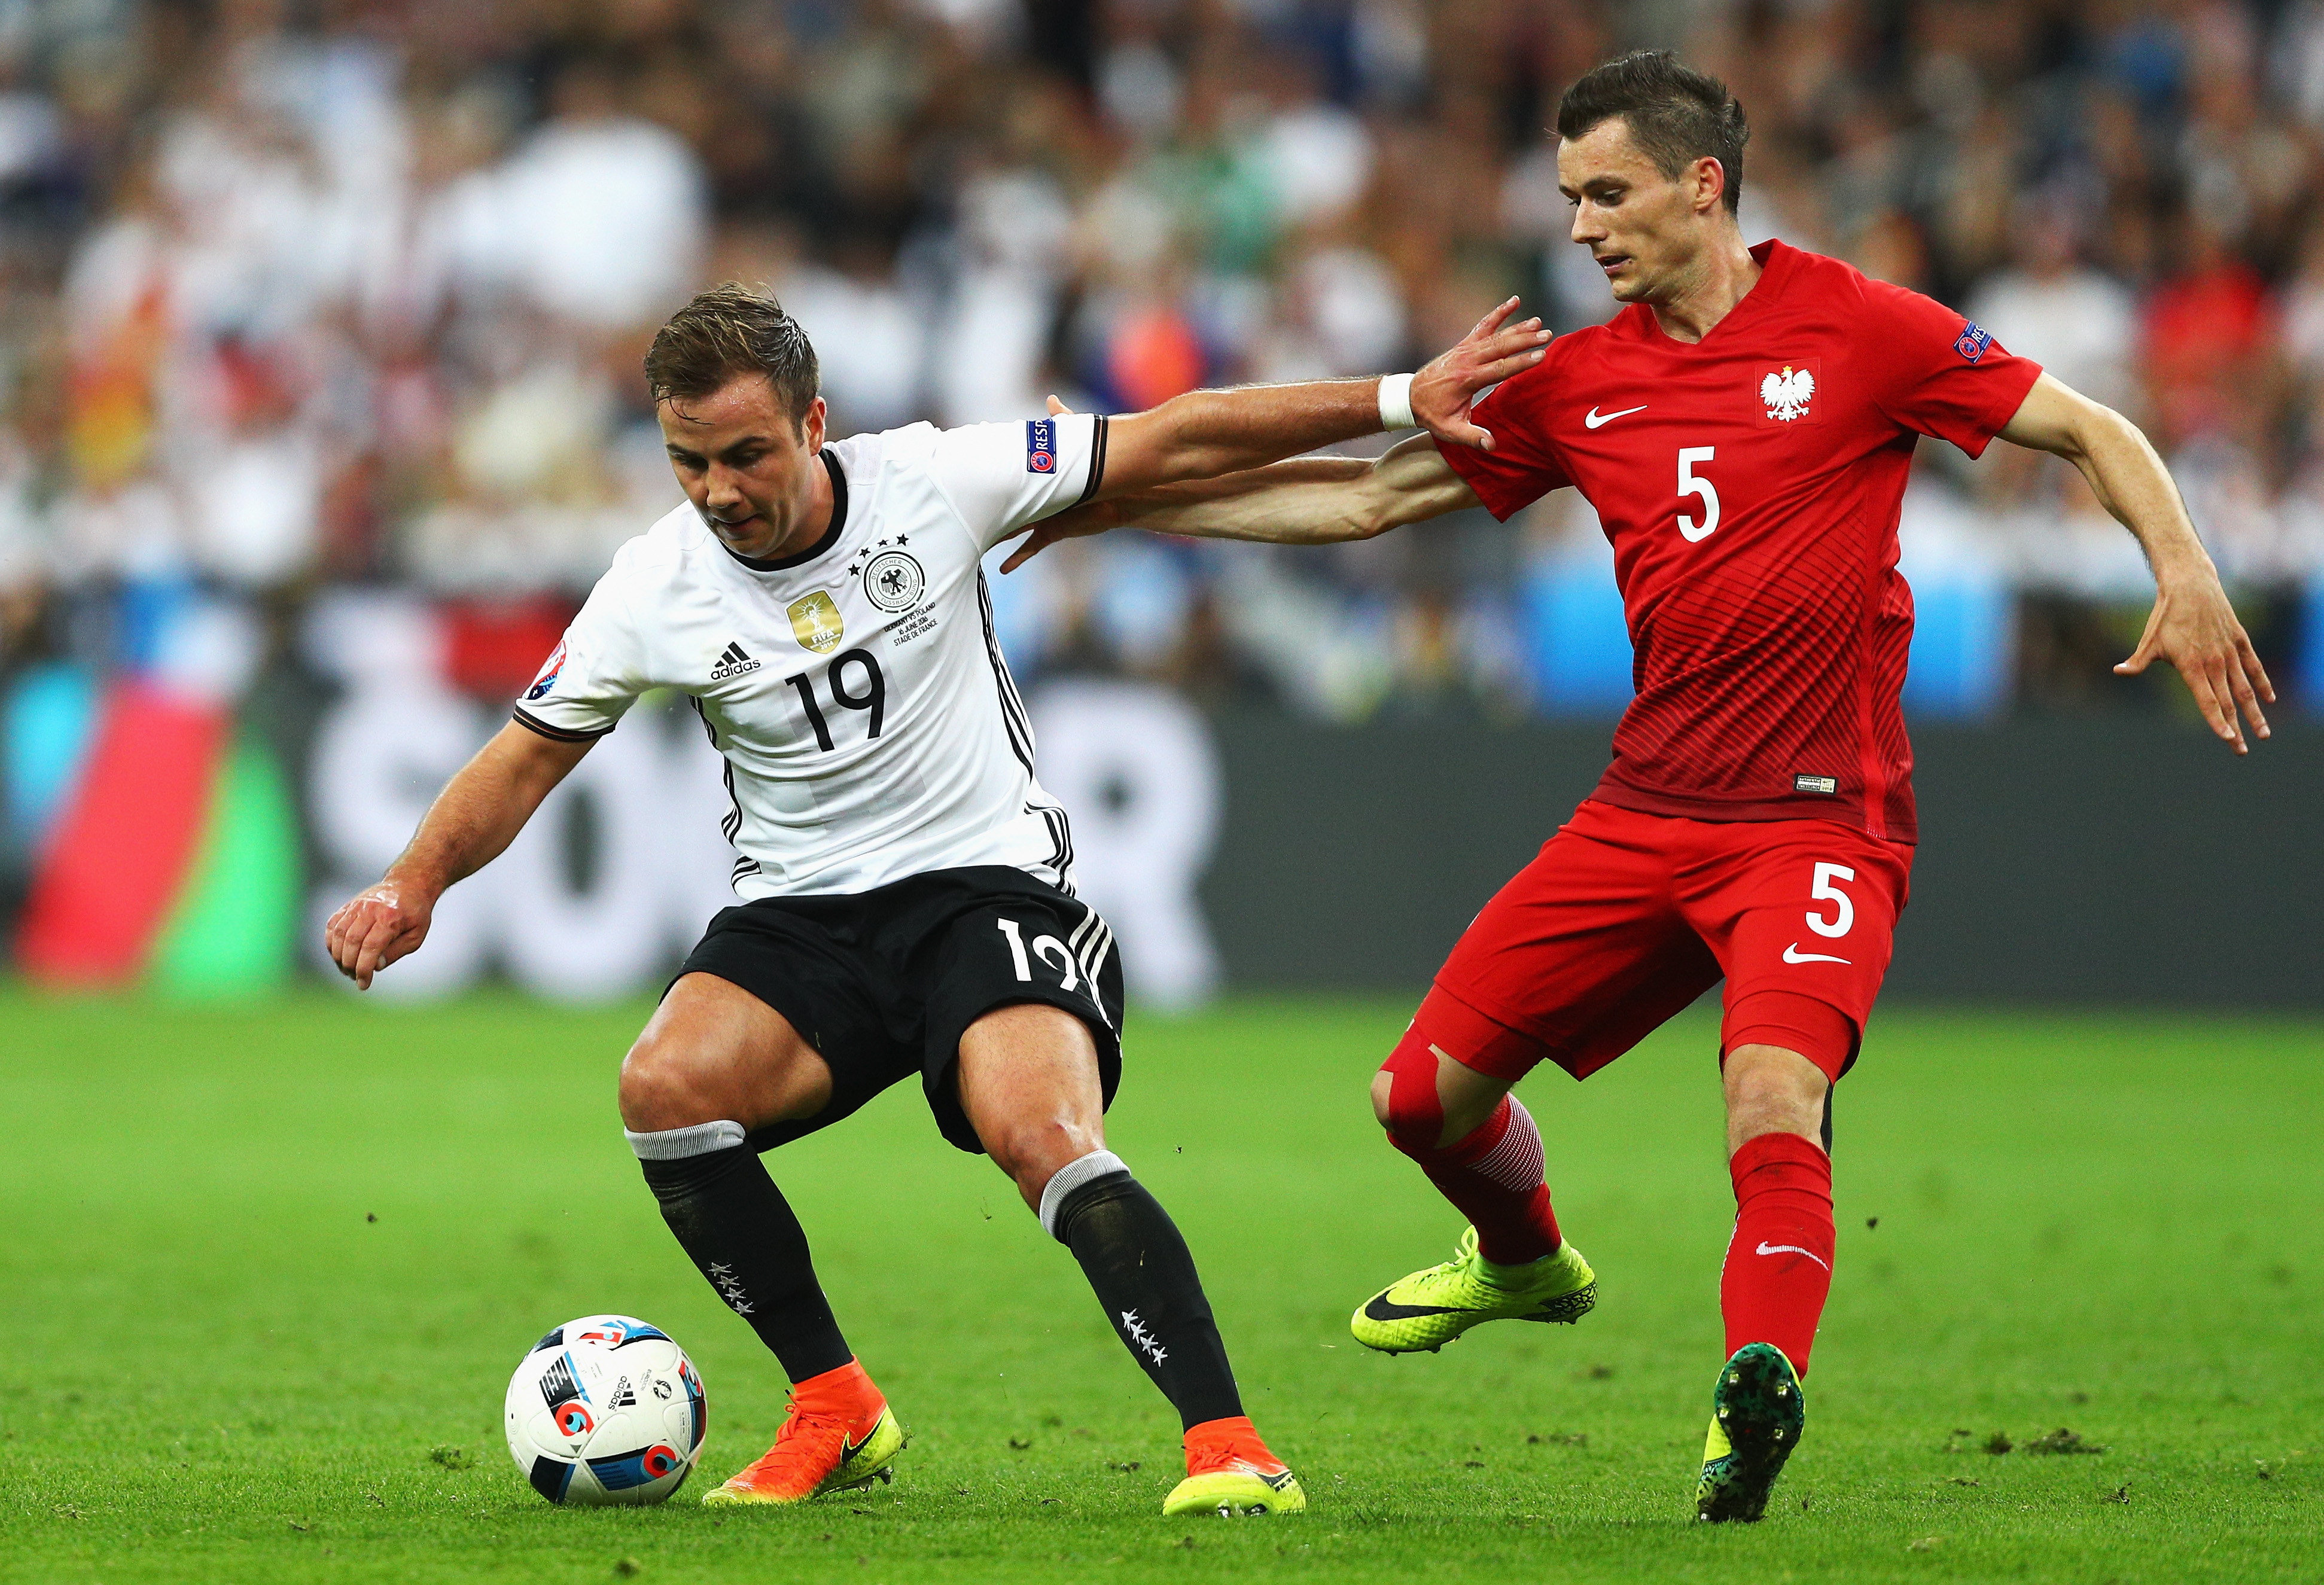 Tottenham, Dortmund in for Götze as Liverpool Pulls Out